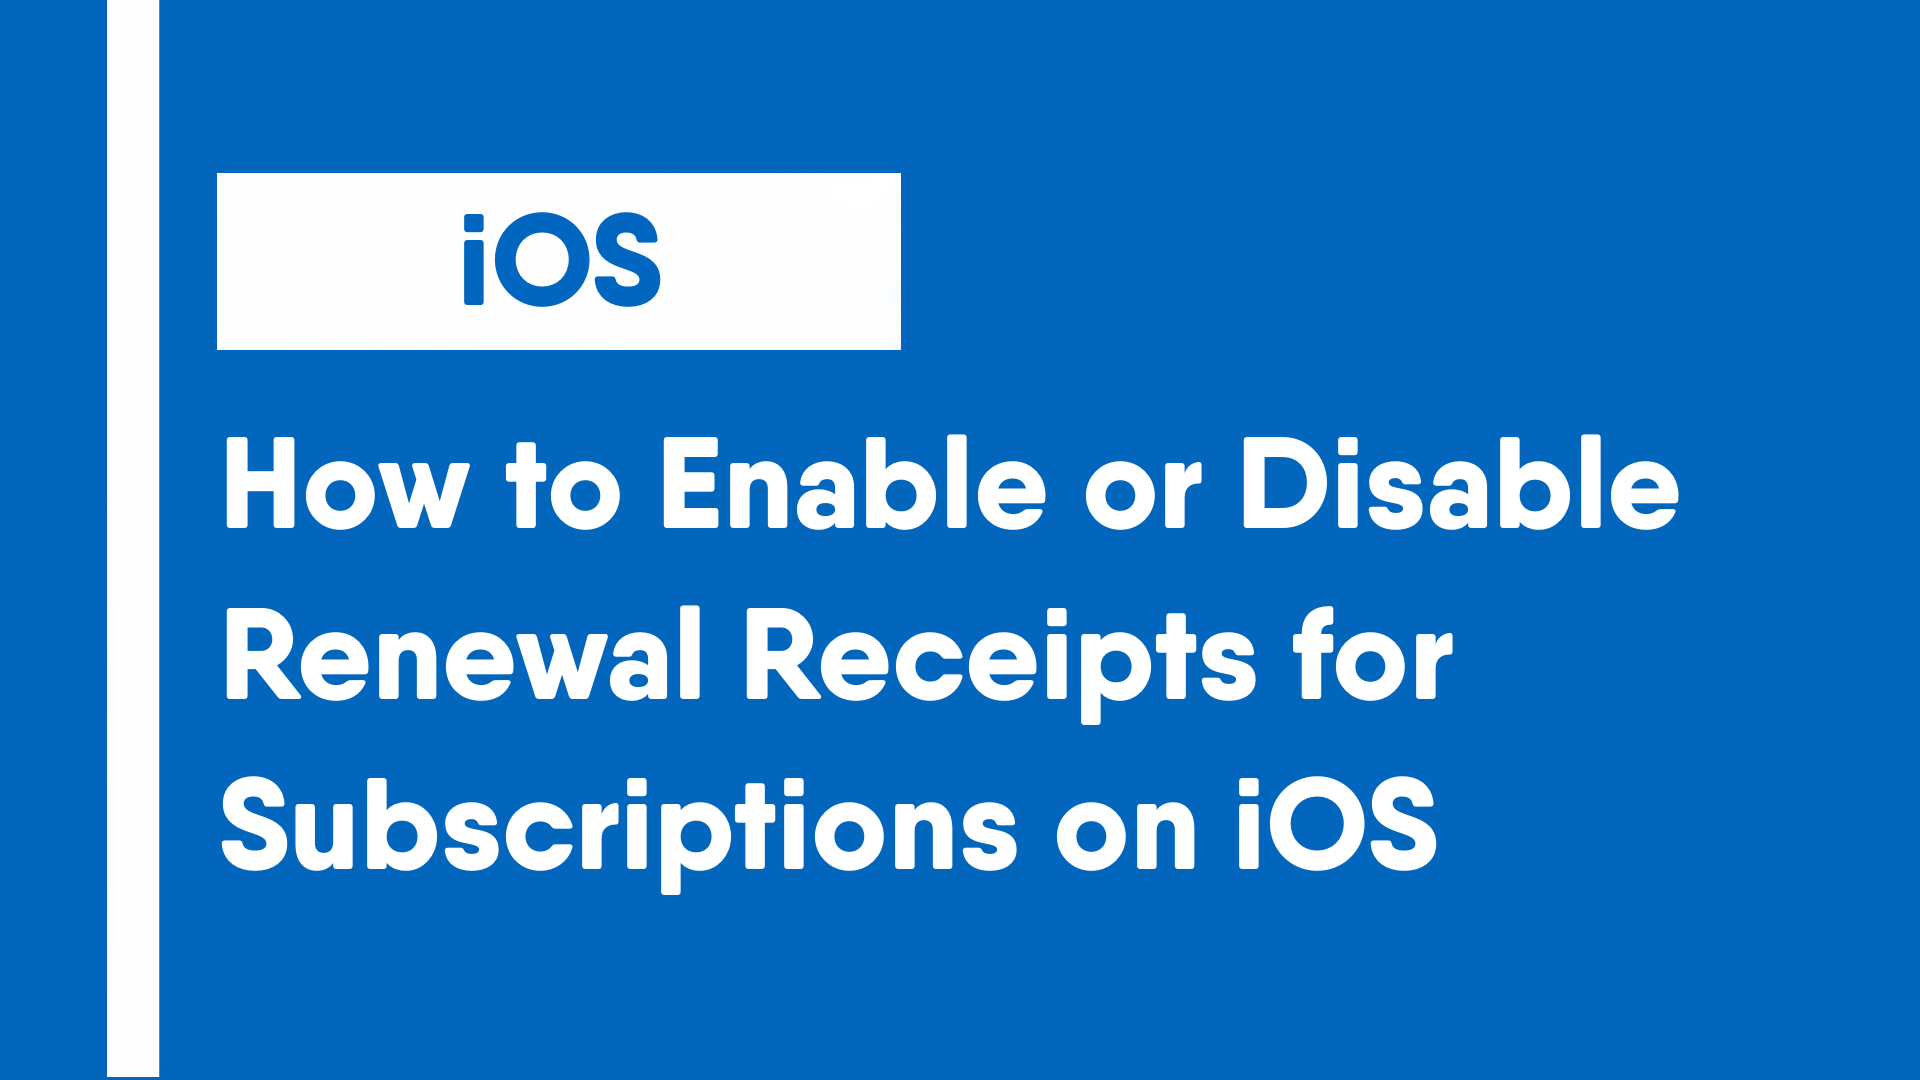 How to Enable or Disable Renewal Receipts for Subscriptions on iOS